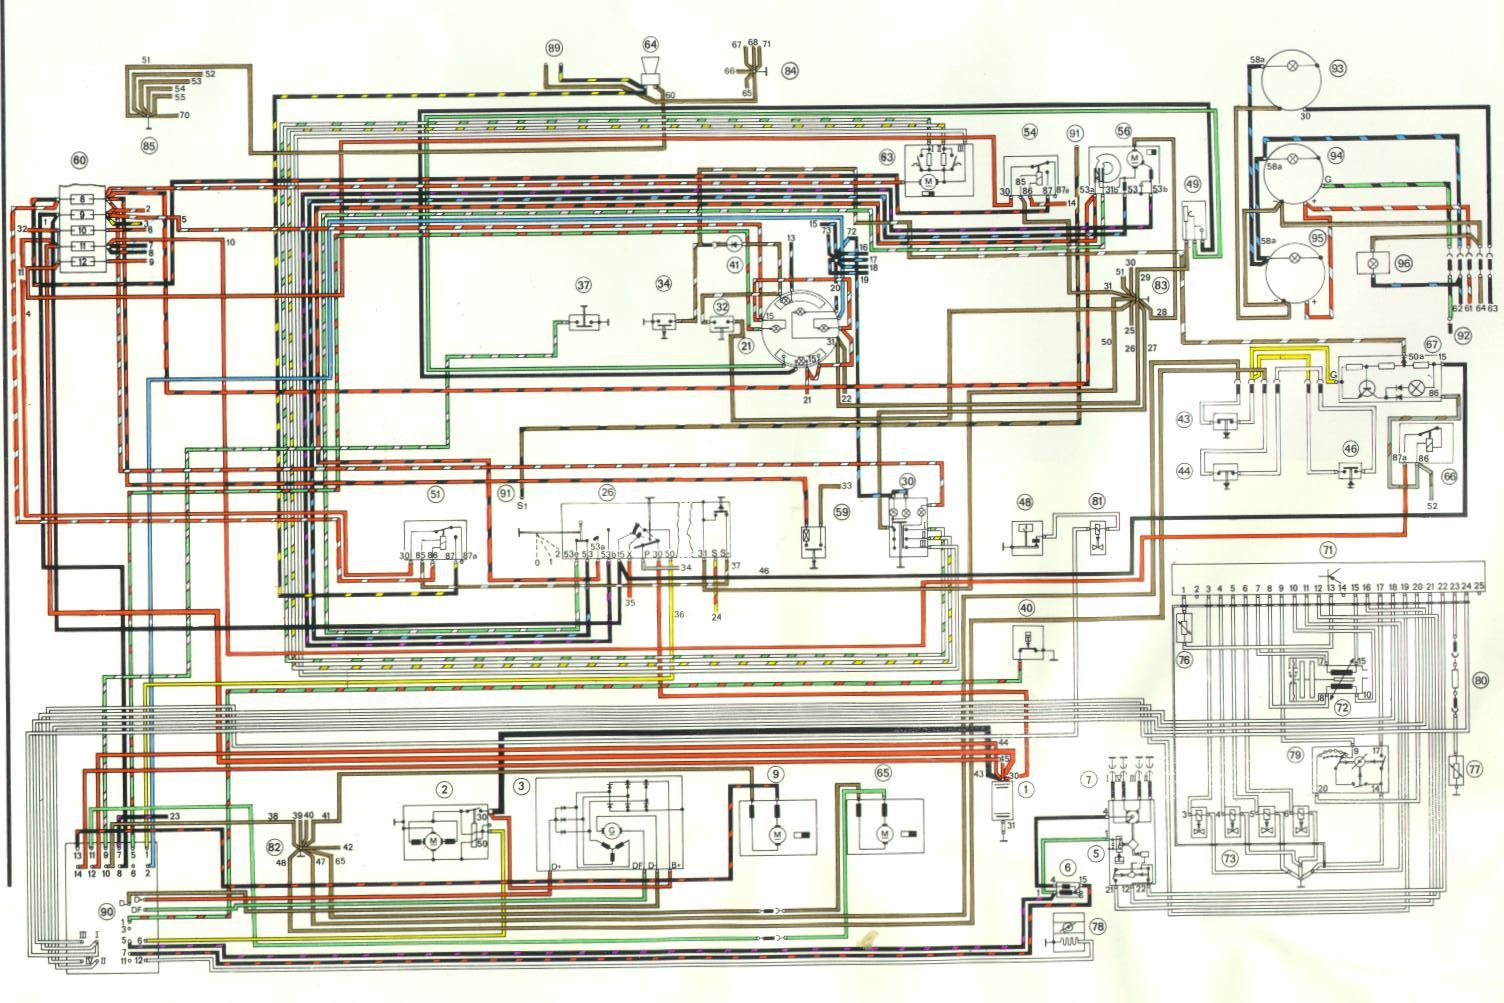 hight resolution of 1975 porsche 911 wiring diagram schematic wiring diagrams rh 46 koch foerderbandtrommeln de porsche 911 turbo